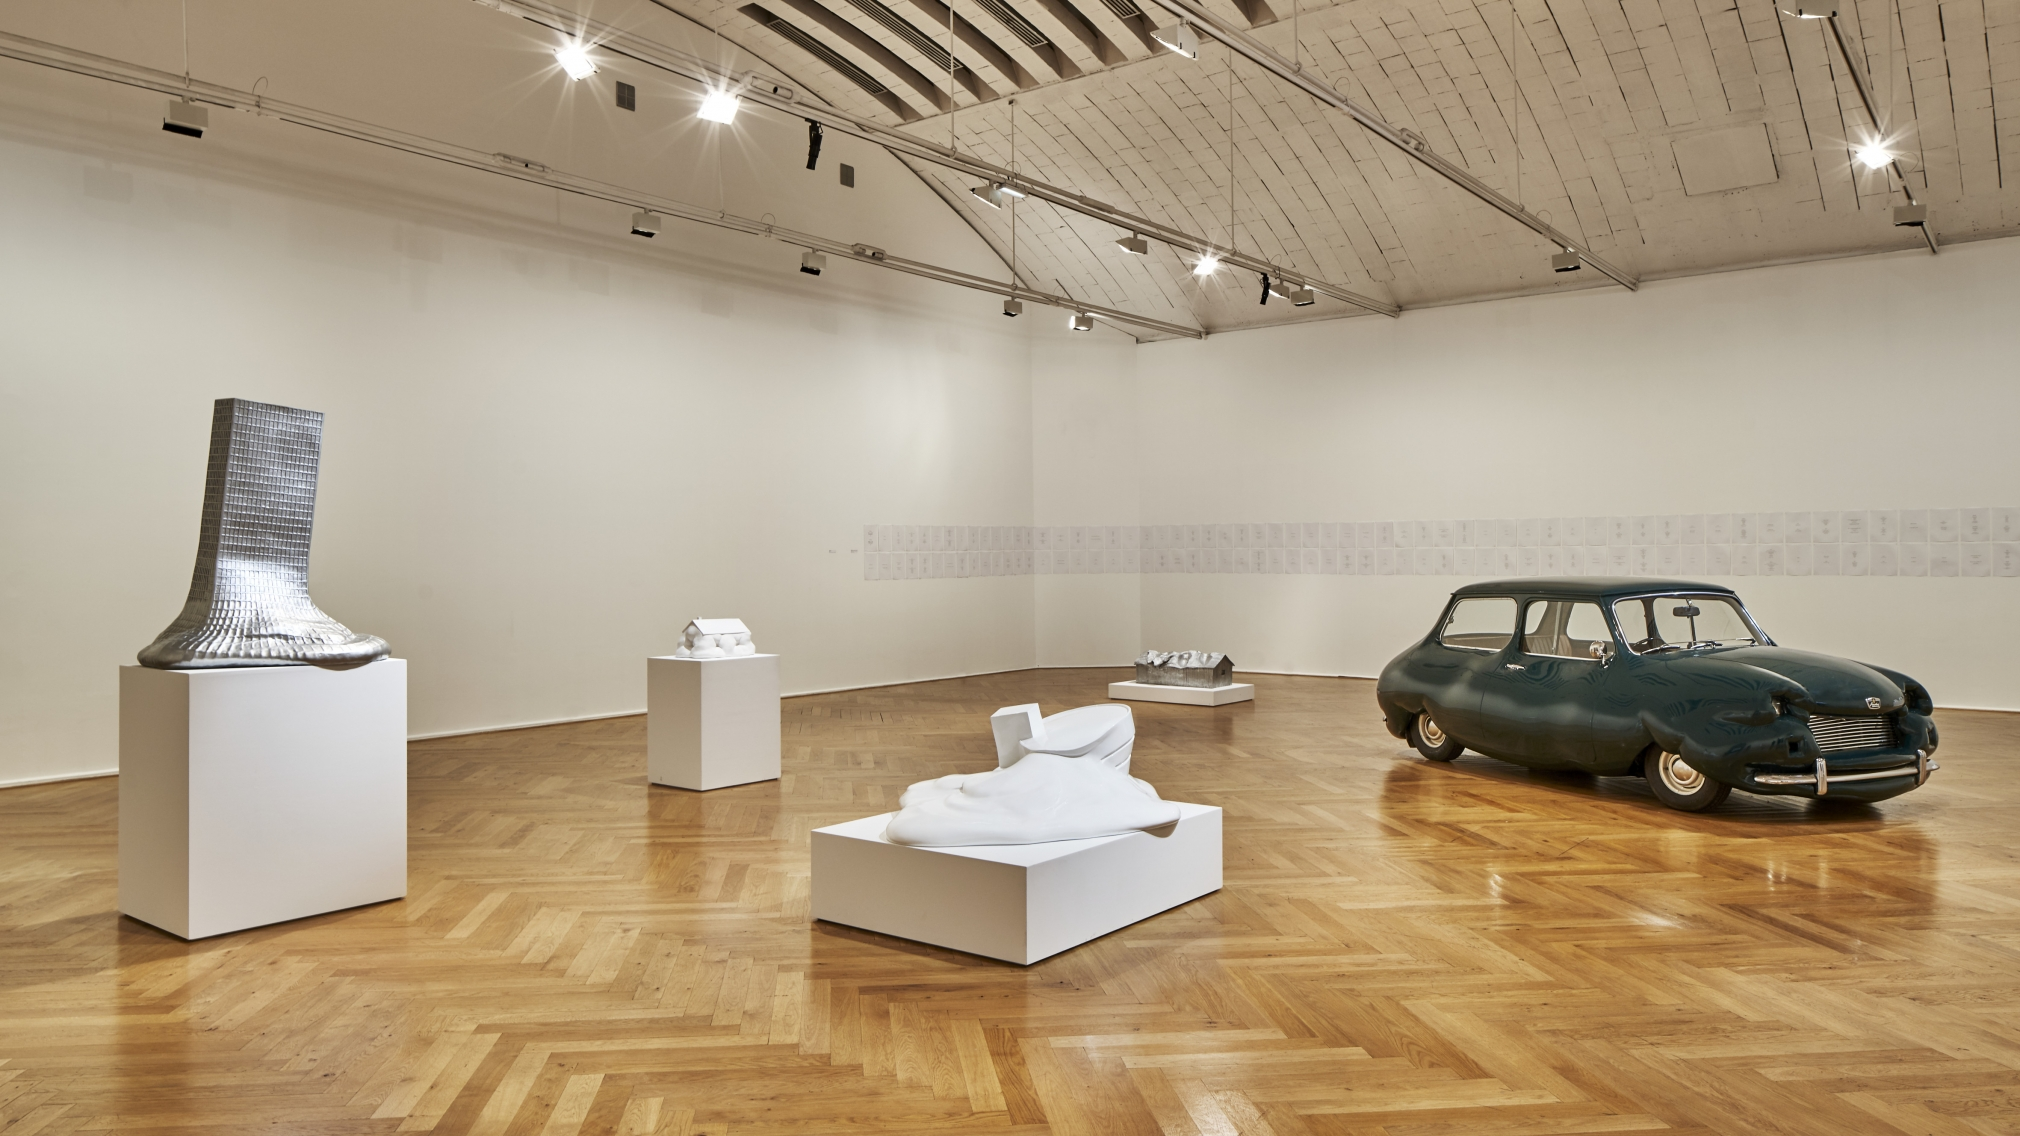 ERWIN WURM, Installation view